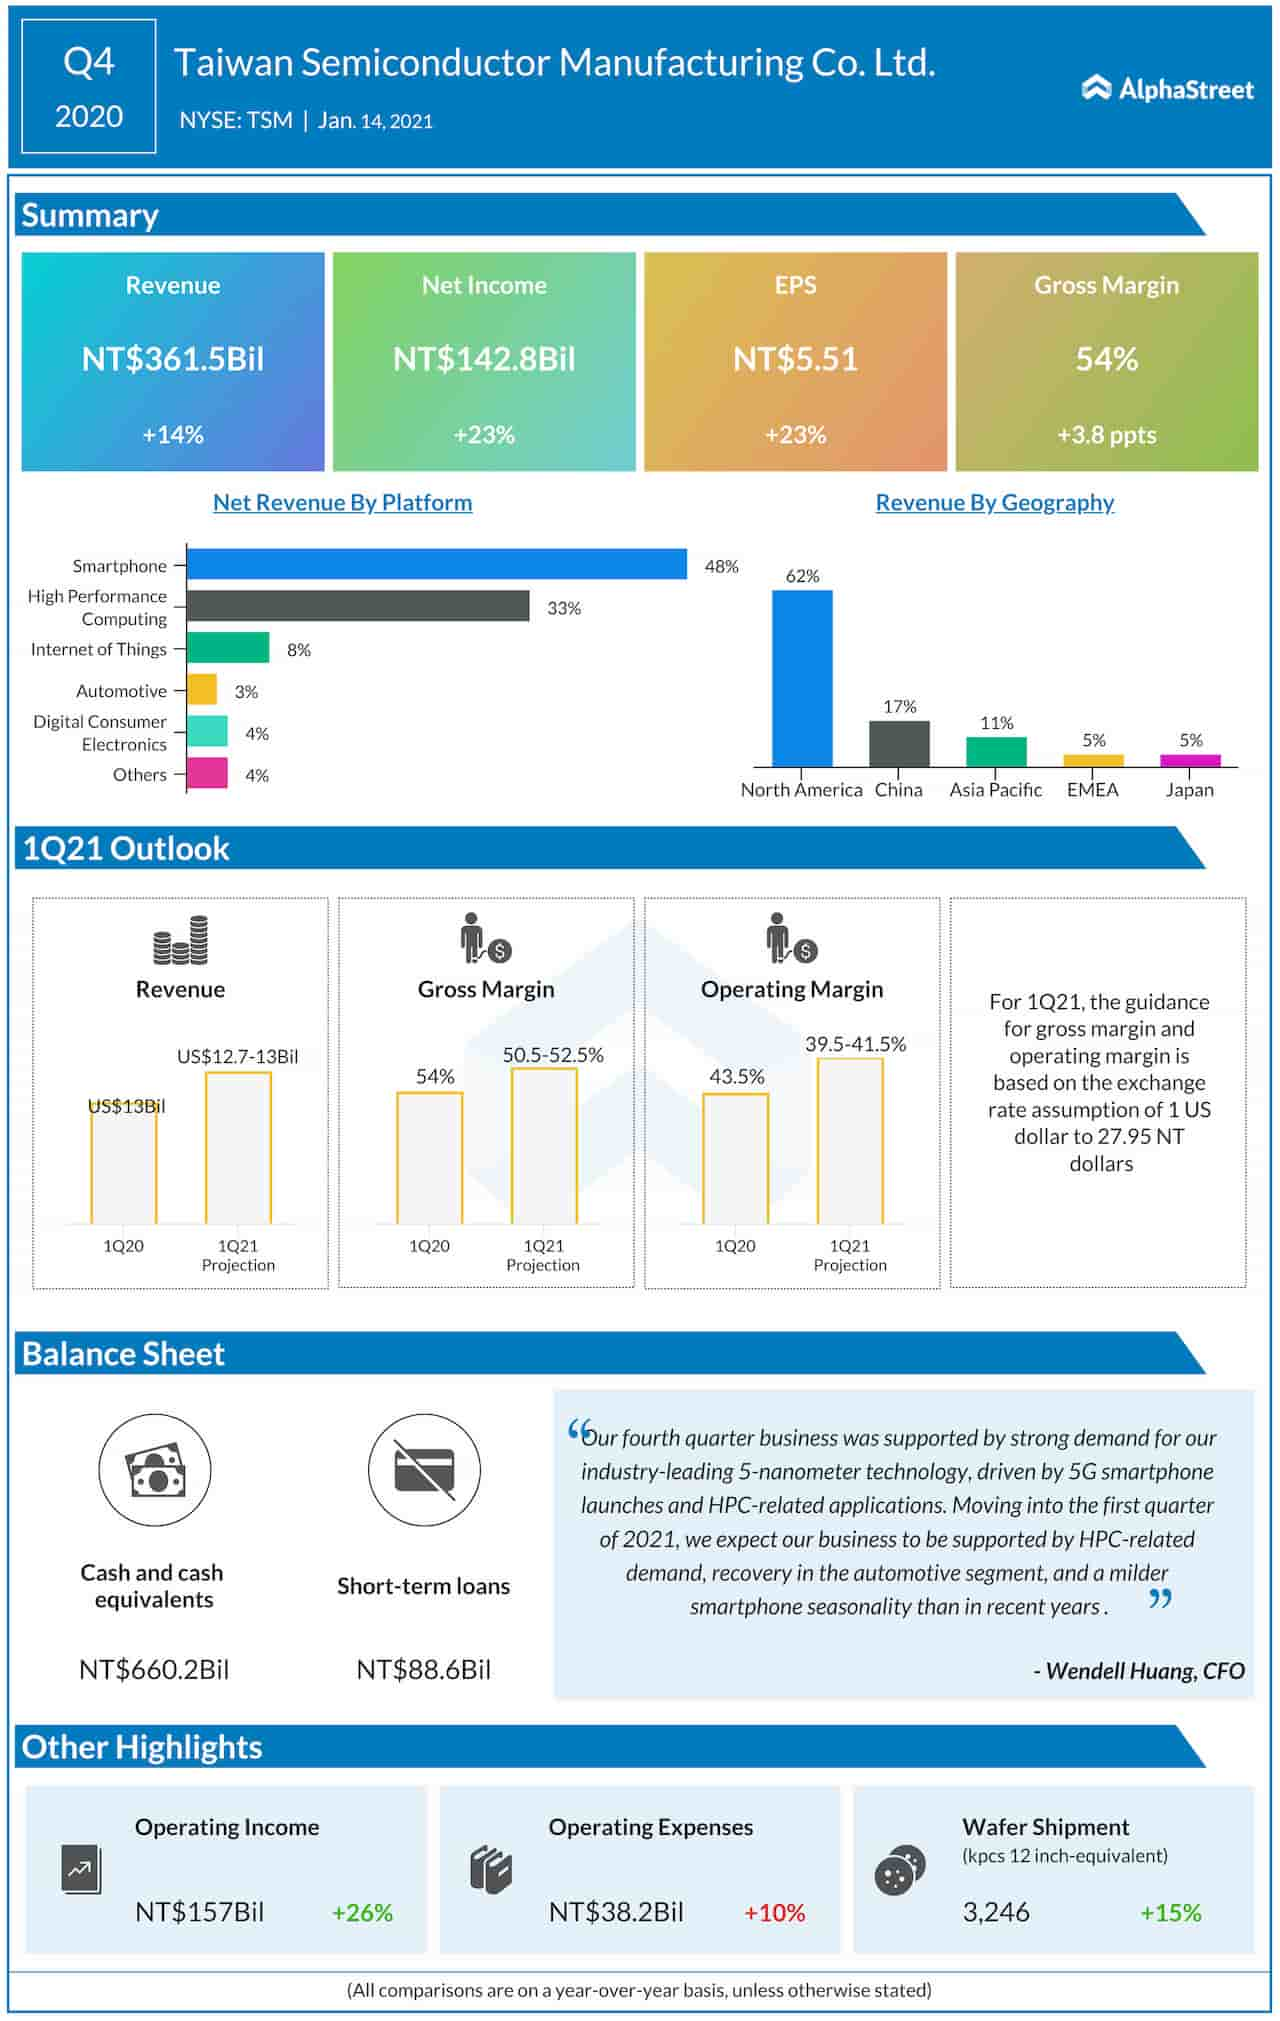 Taiwan Semiconductor Manufacturing Company Q4 2020 earnings infographic